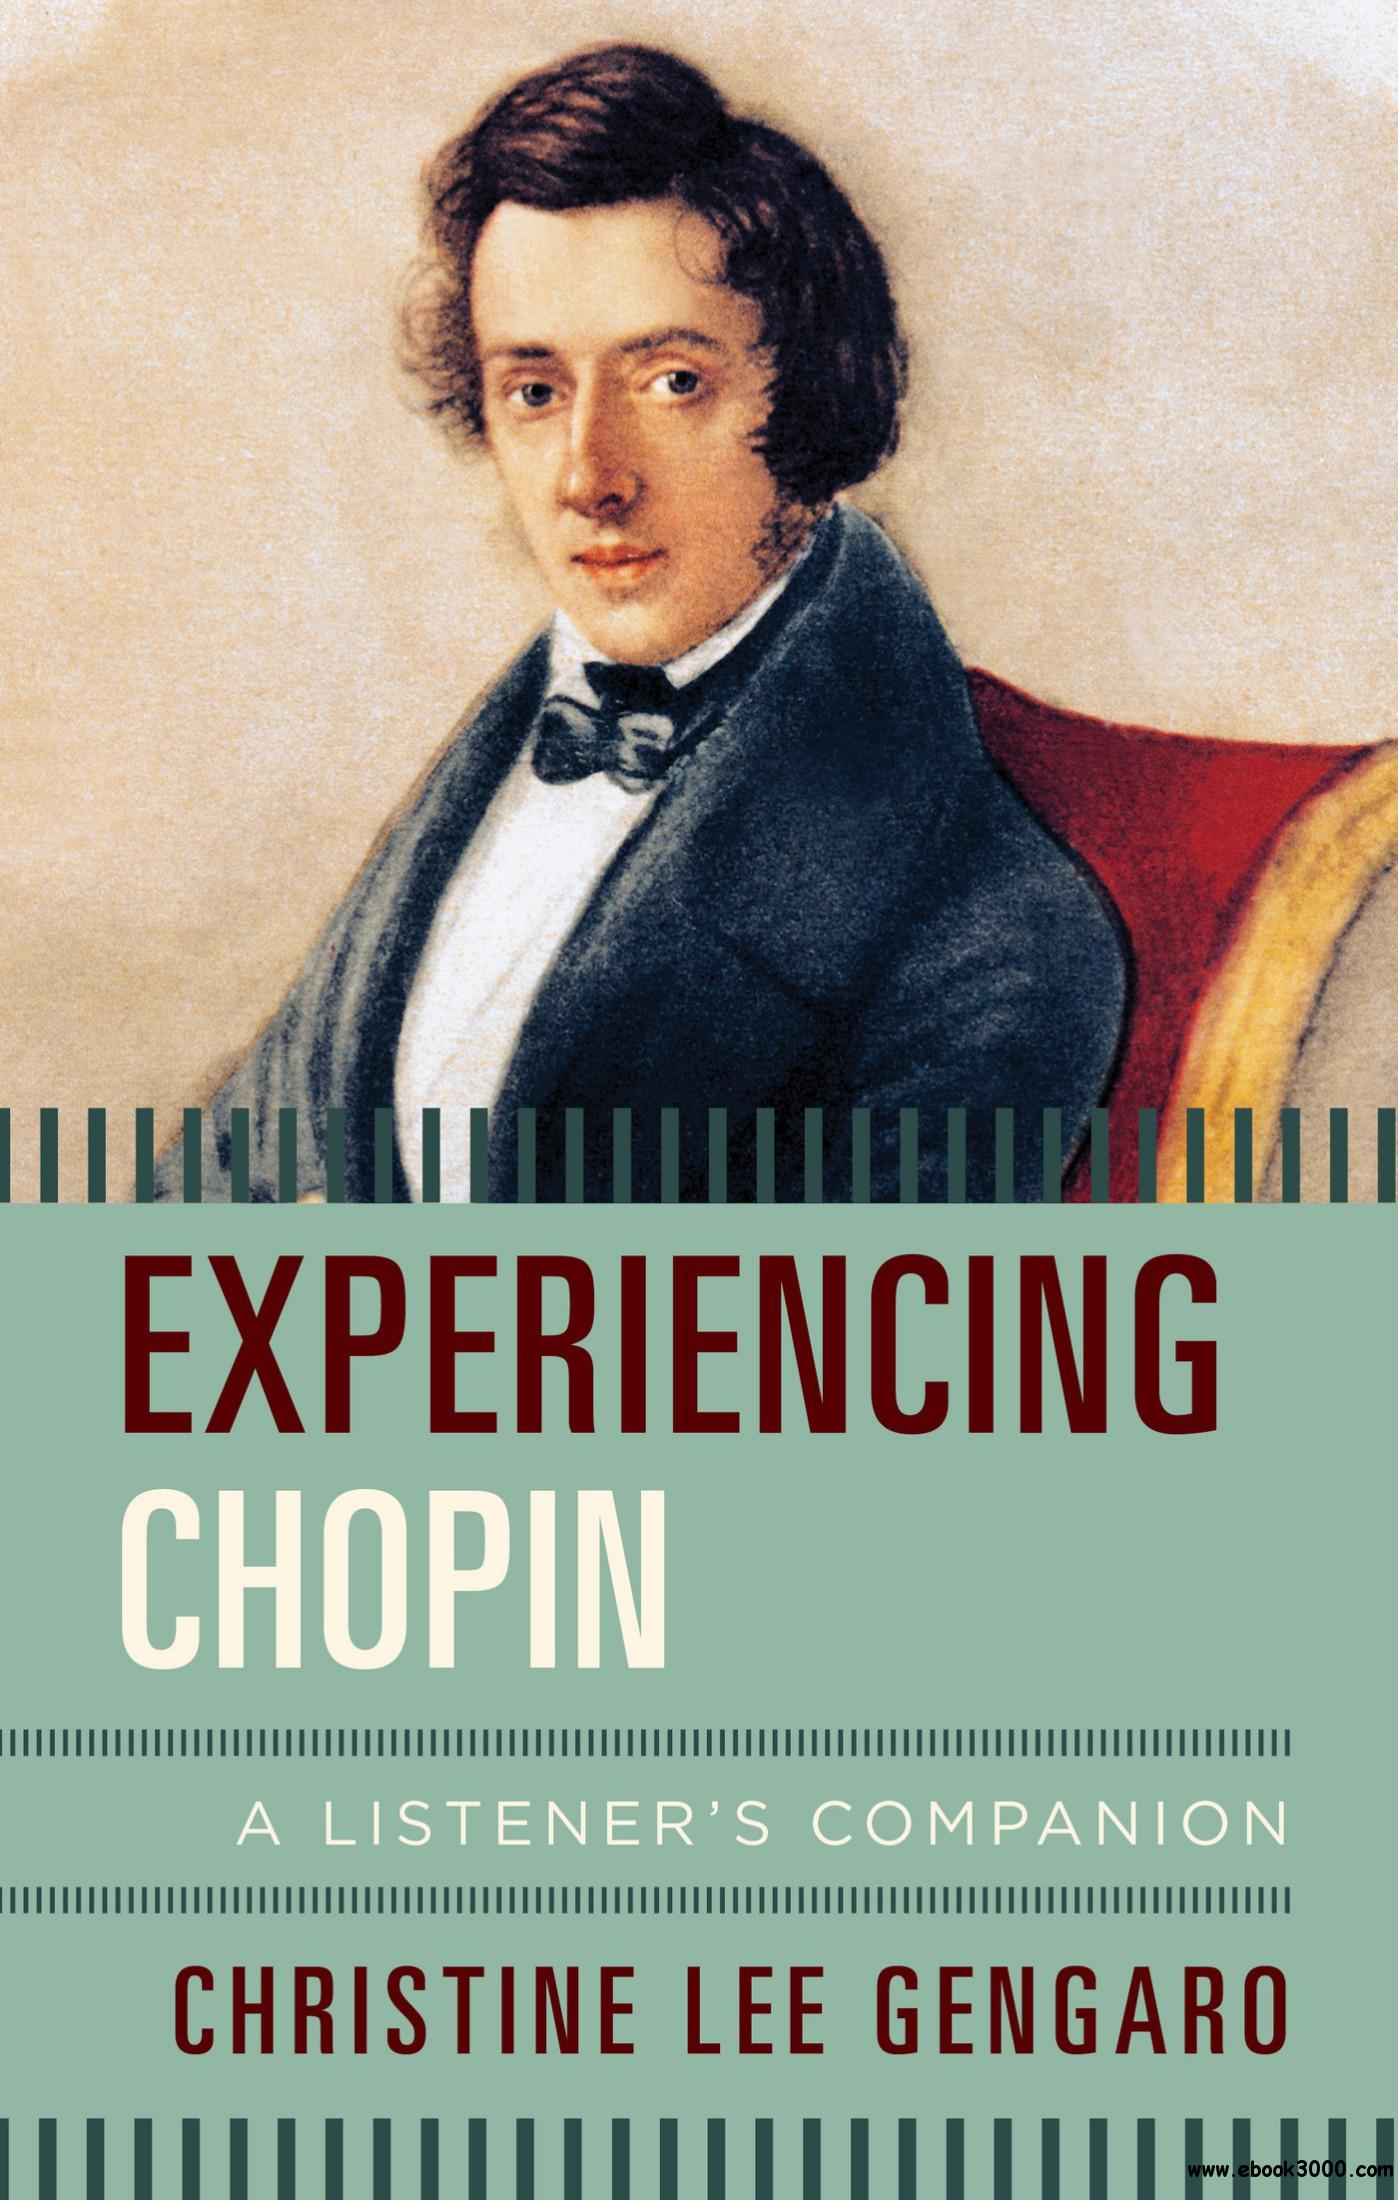 Experiencing Chopin: A Listener's Companion